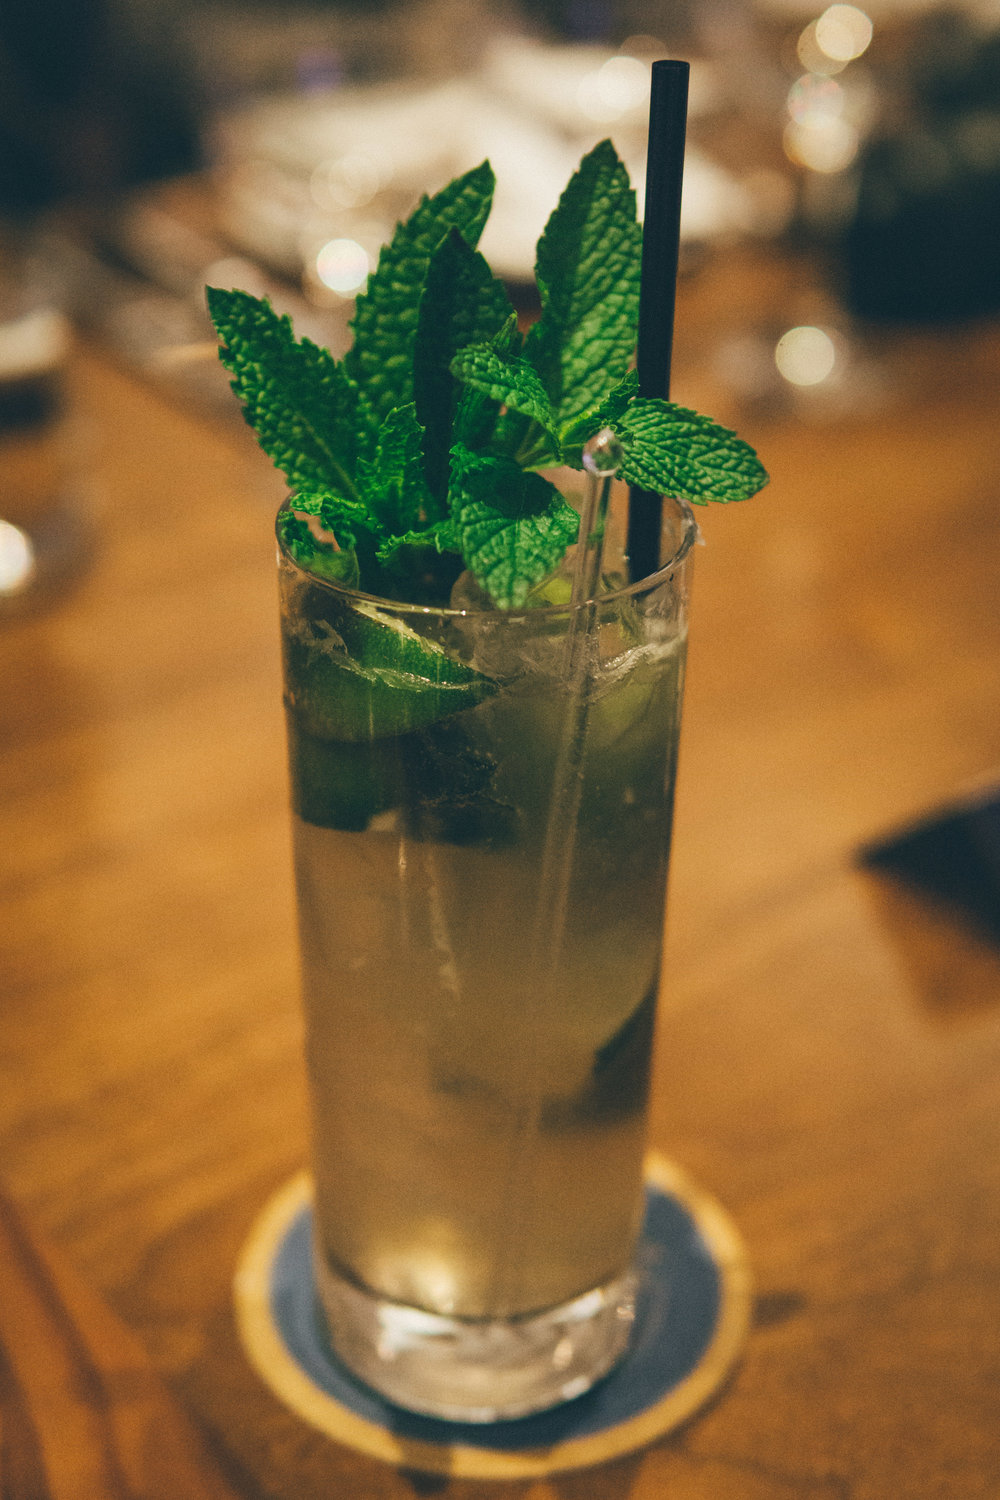 The Rez Cocktail - house-infused pineapple tequila, mint, lime, club soda